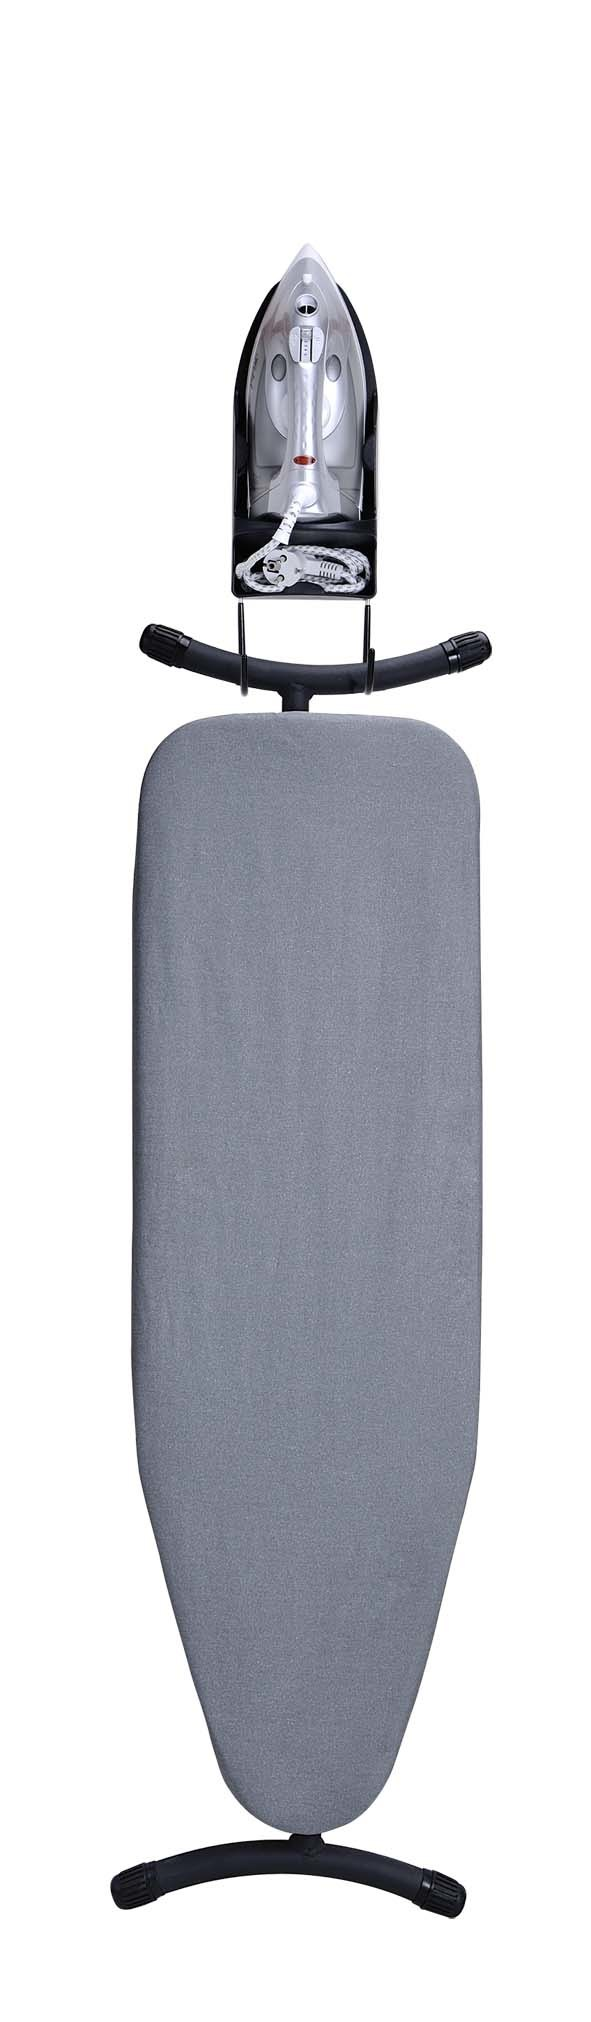 Lightweight Wall-Mounted Anti-Theft Ironing Board for Hotel Guest Room